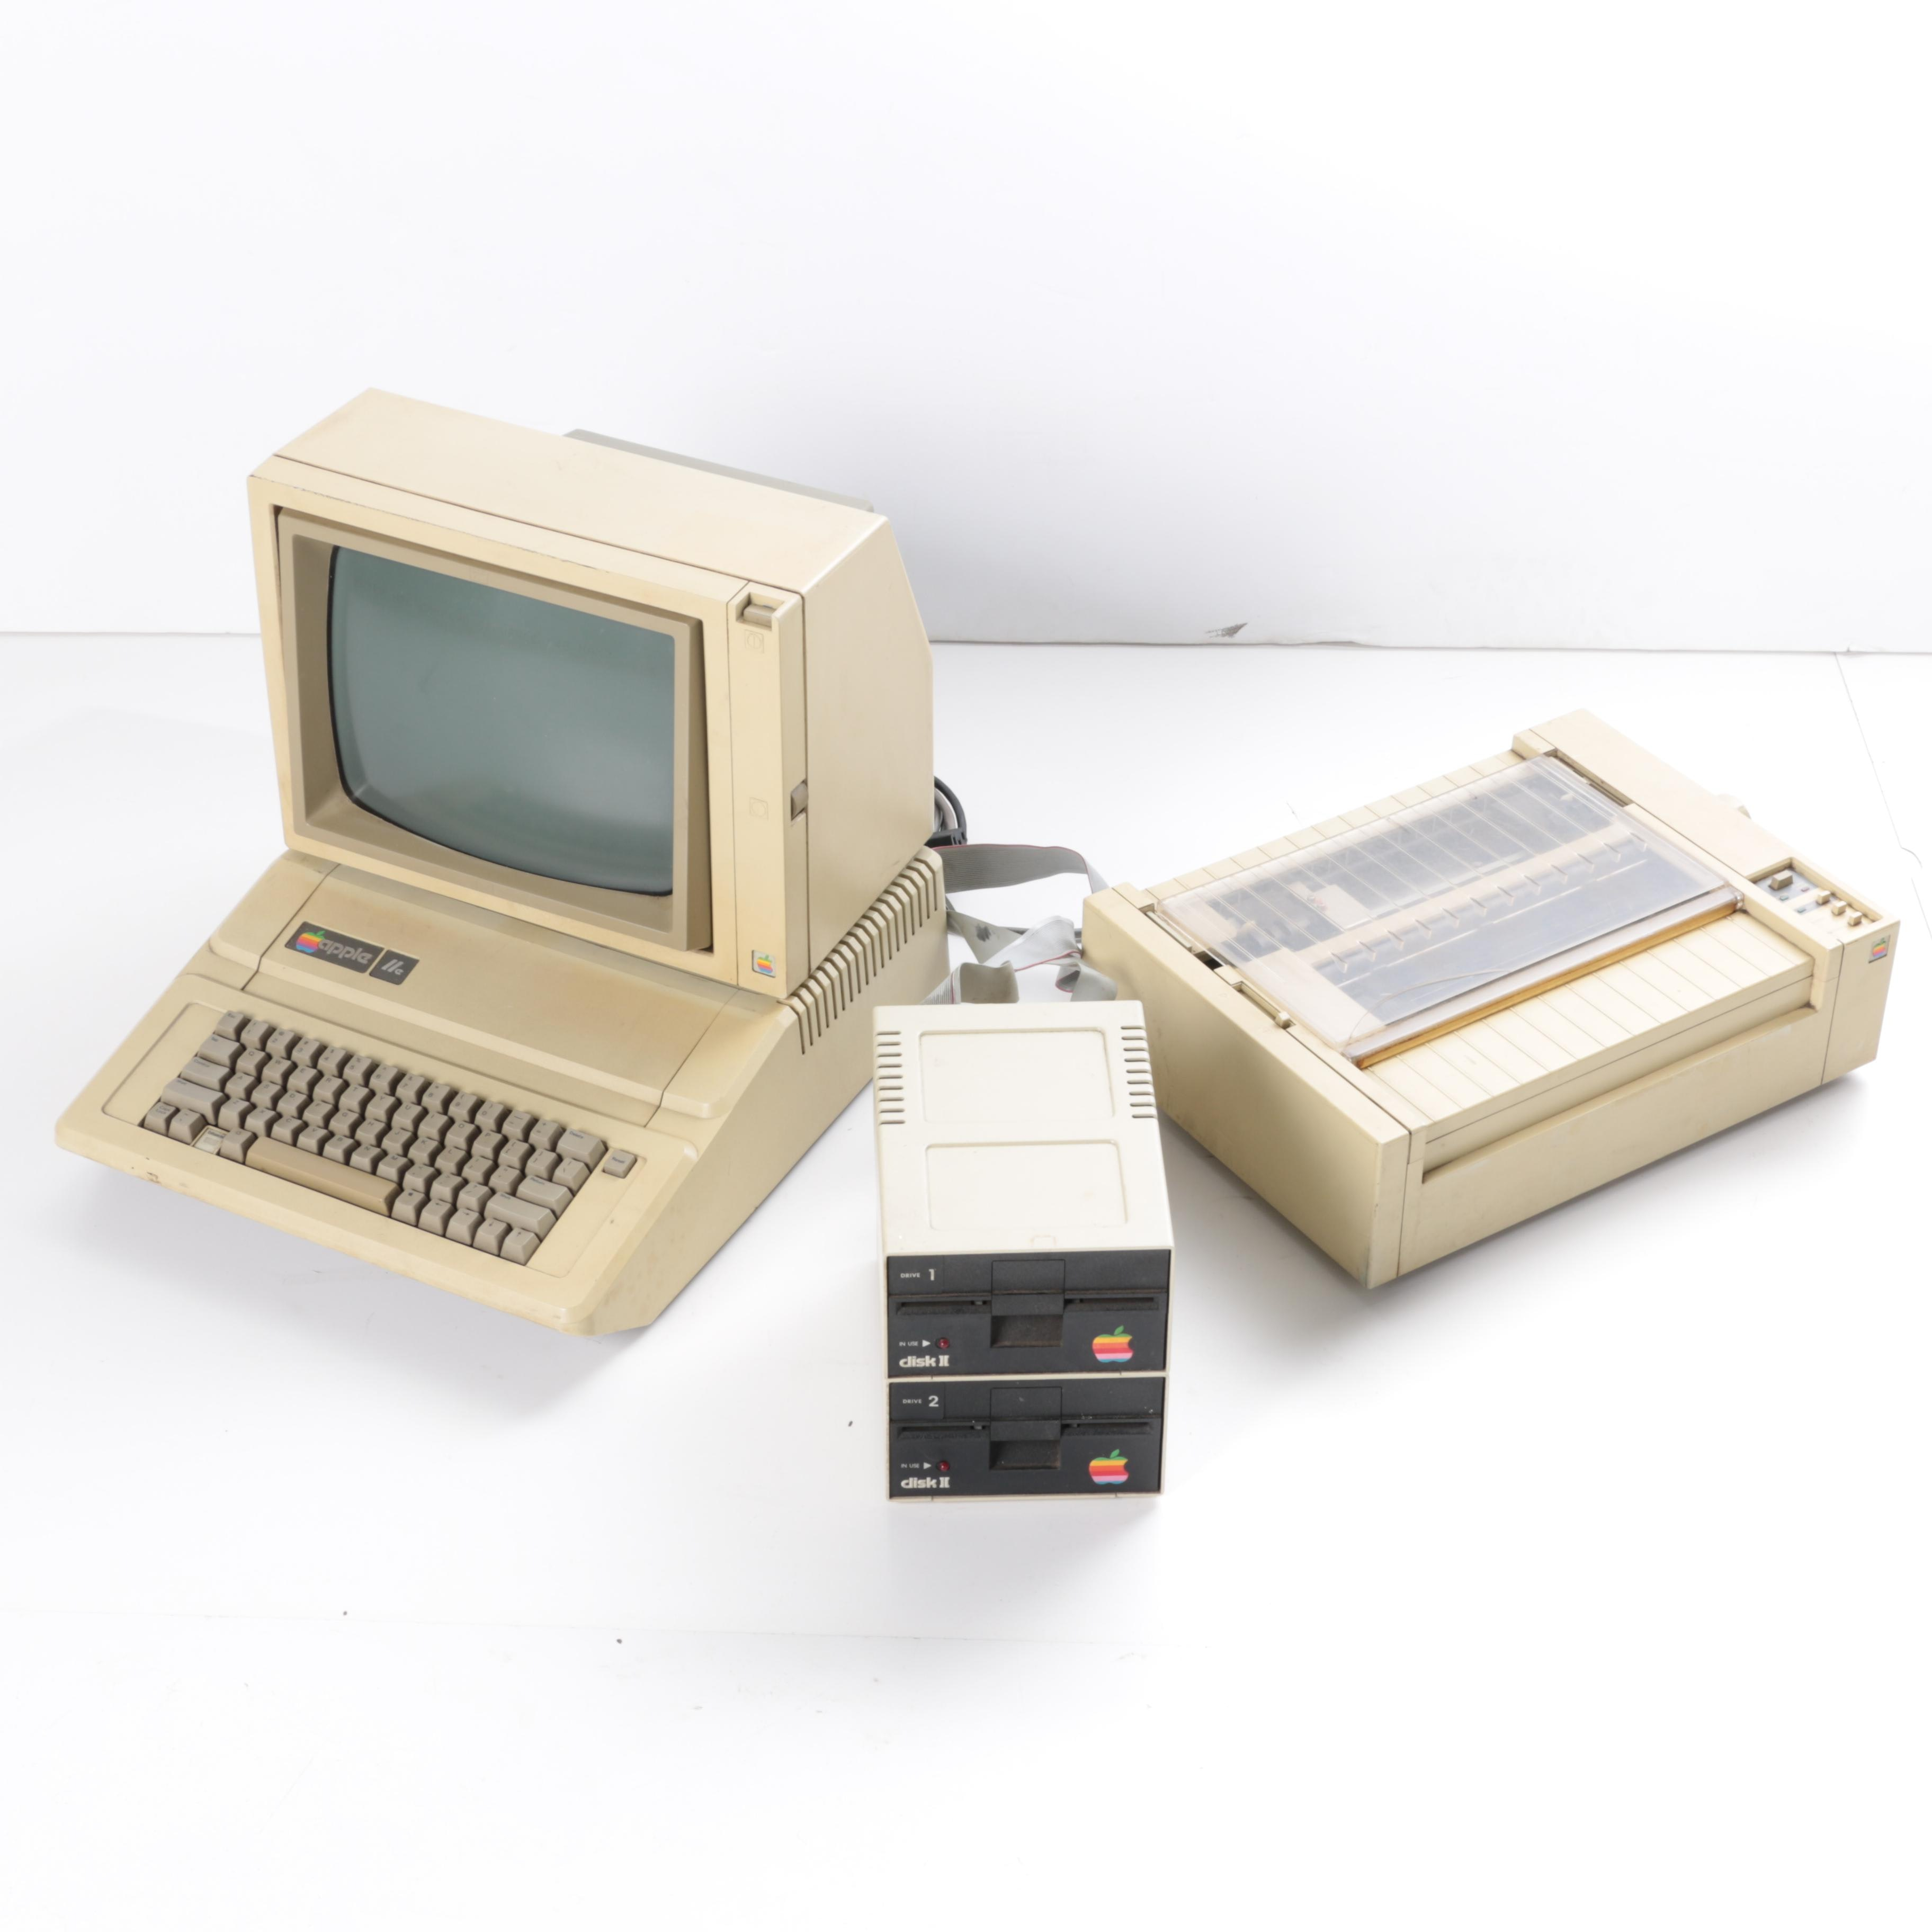 Vintage Apple IIe Computer with Accessories